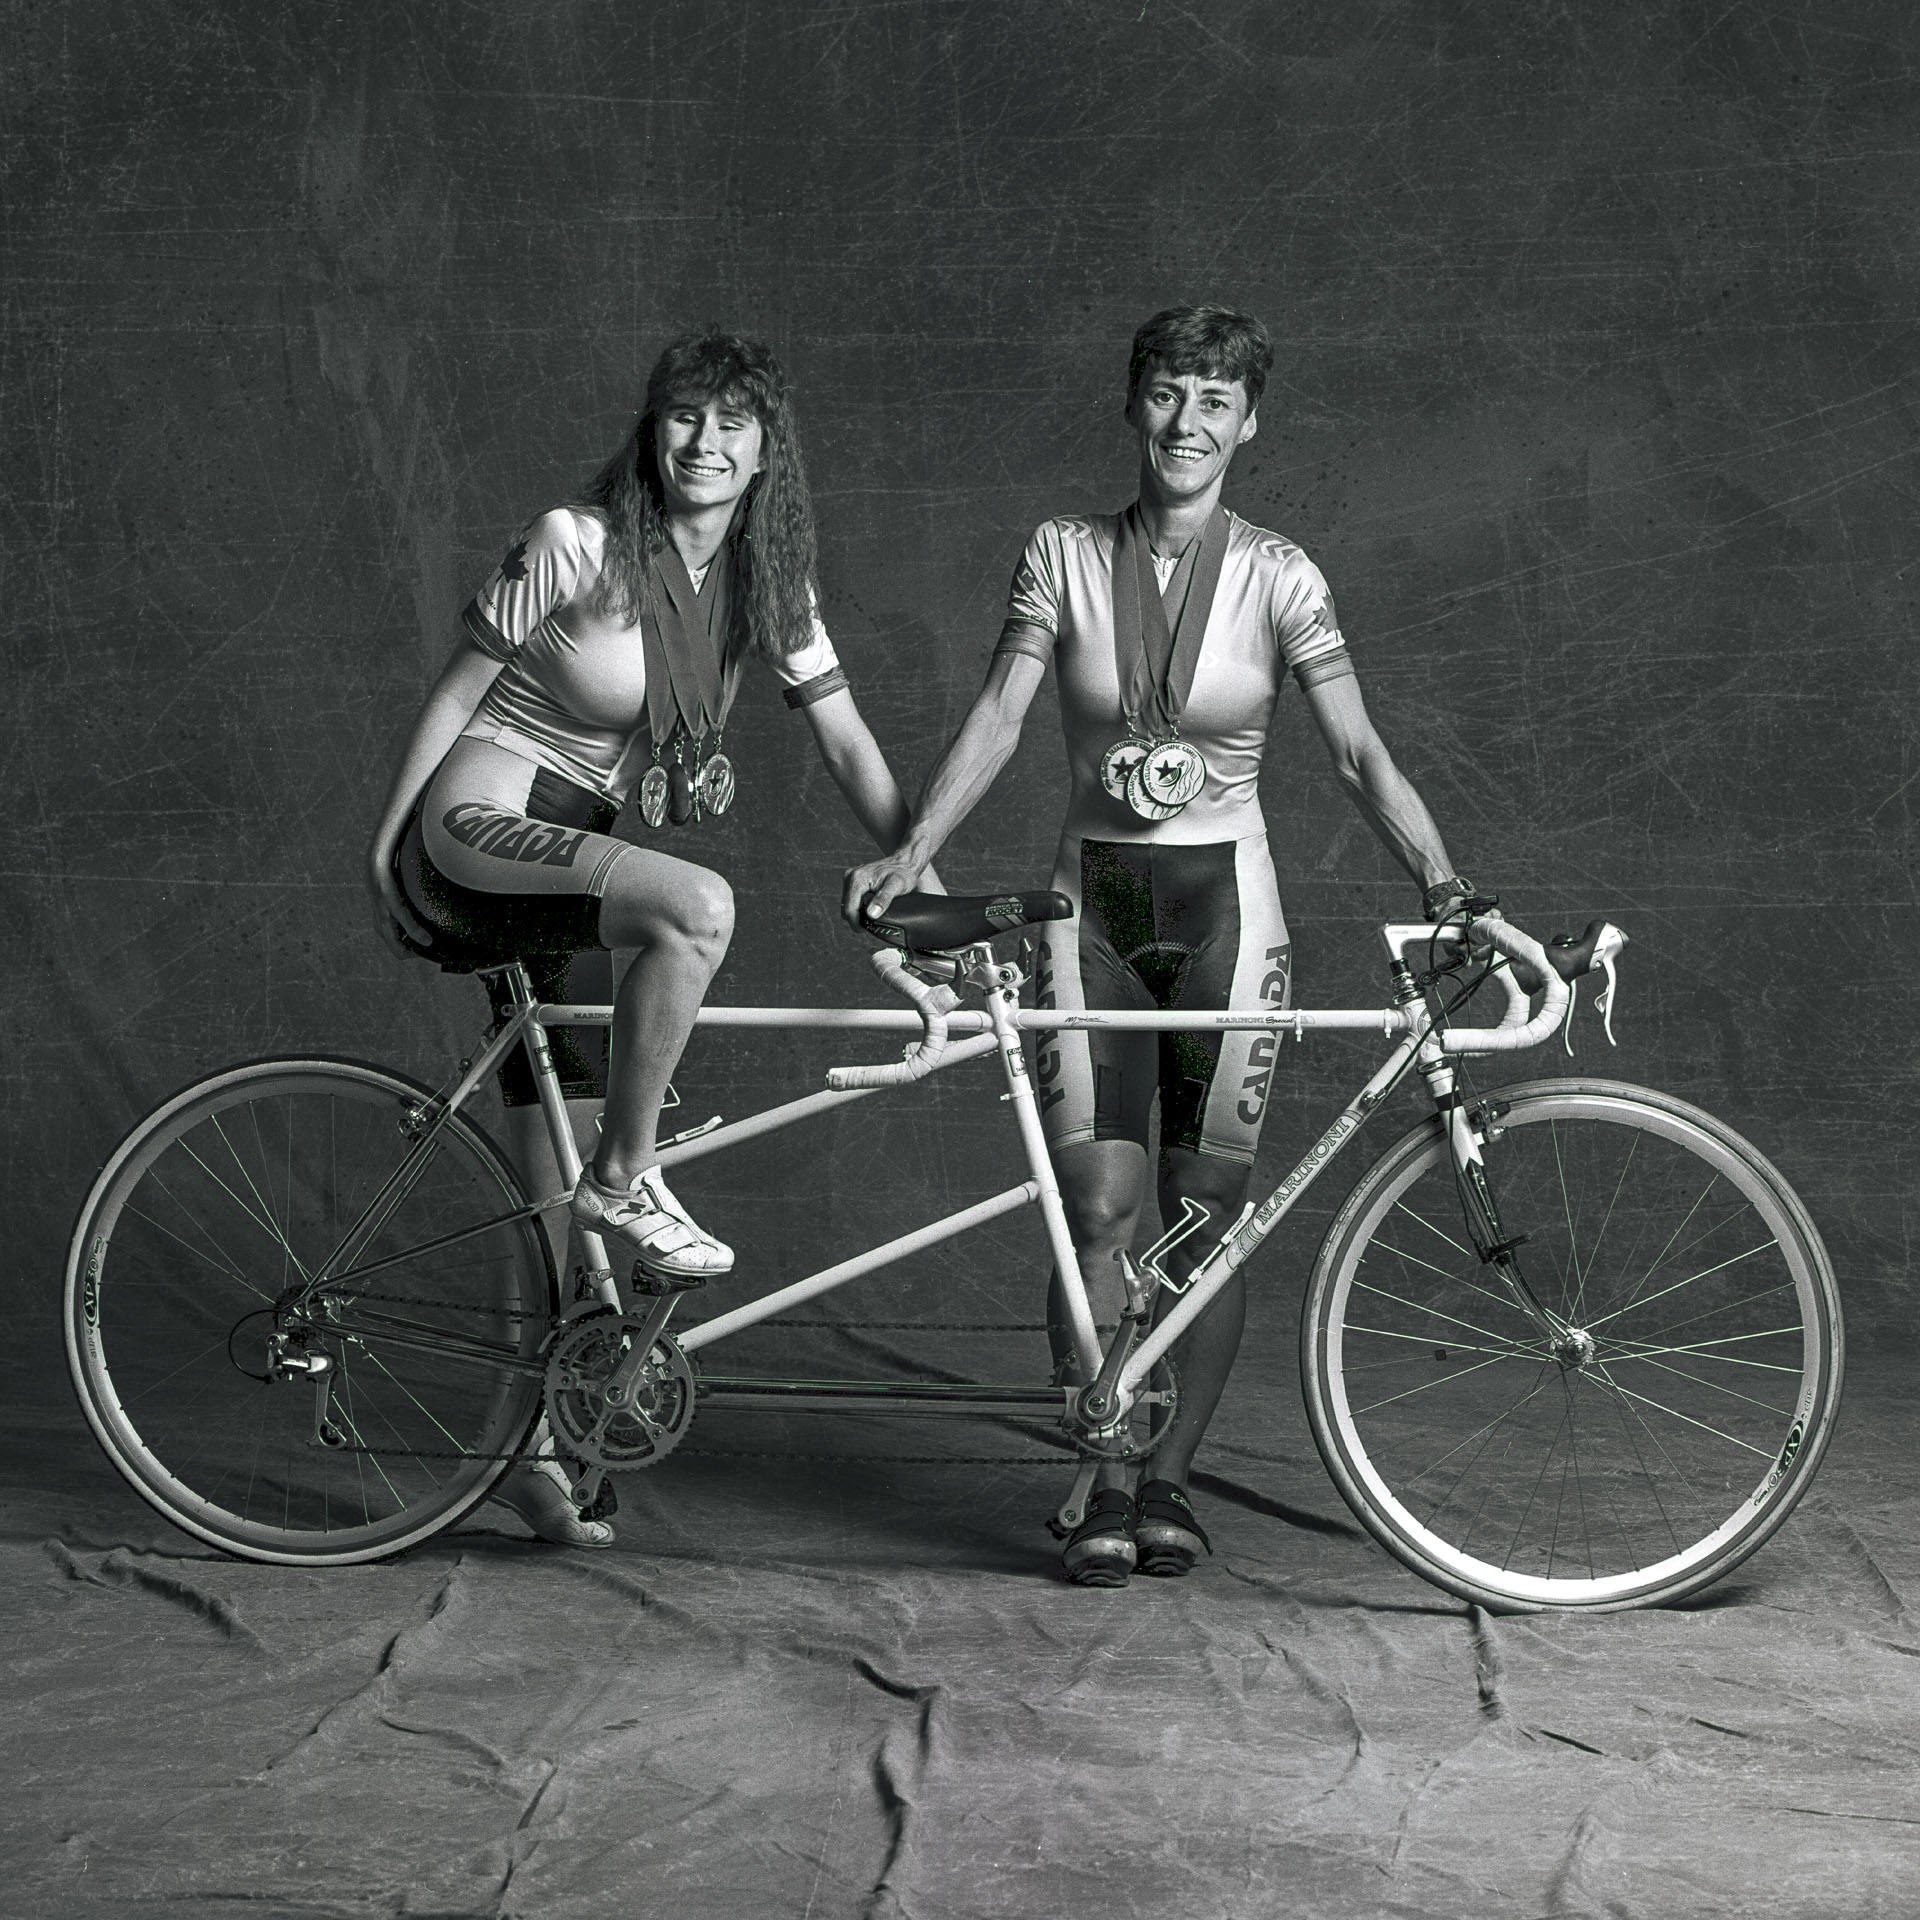 1996 Paralympic Cyclists by Kevin Ames